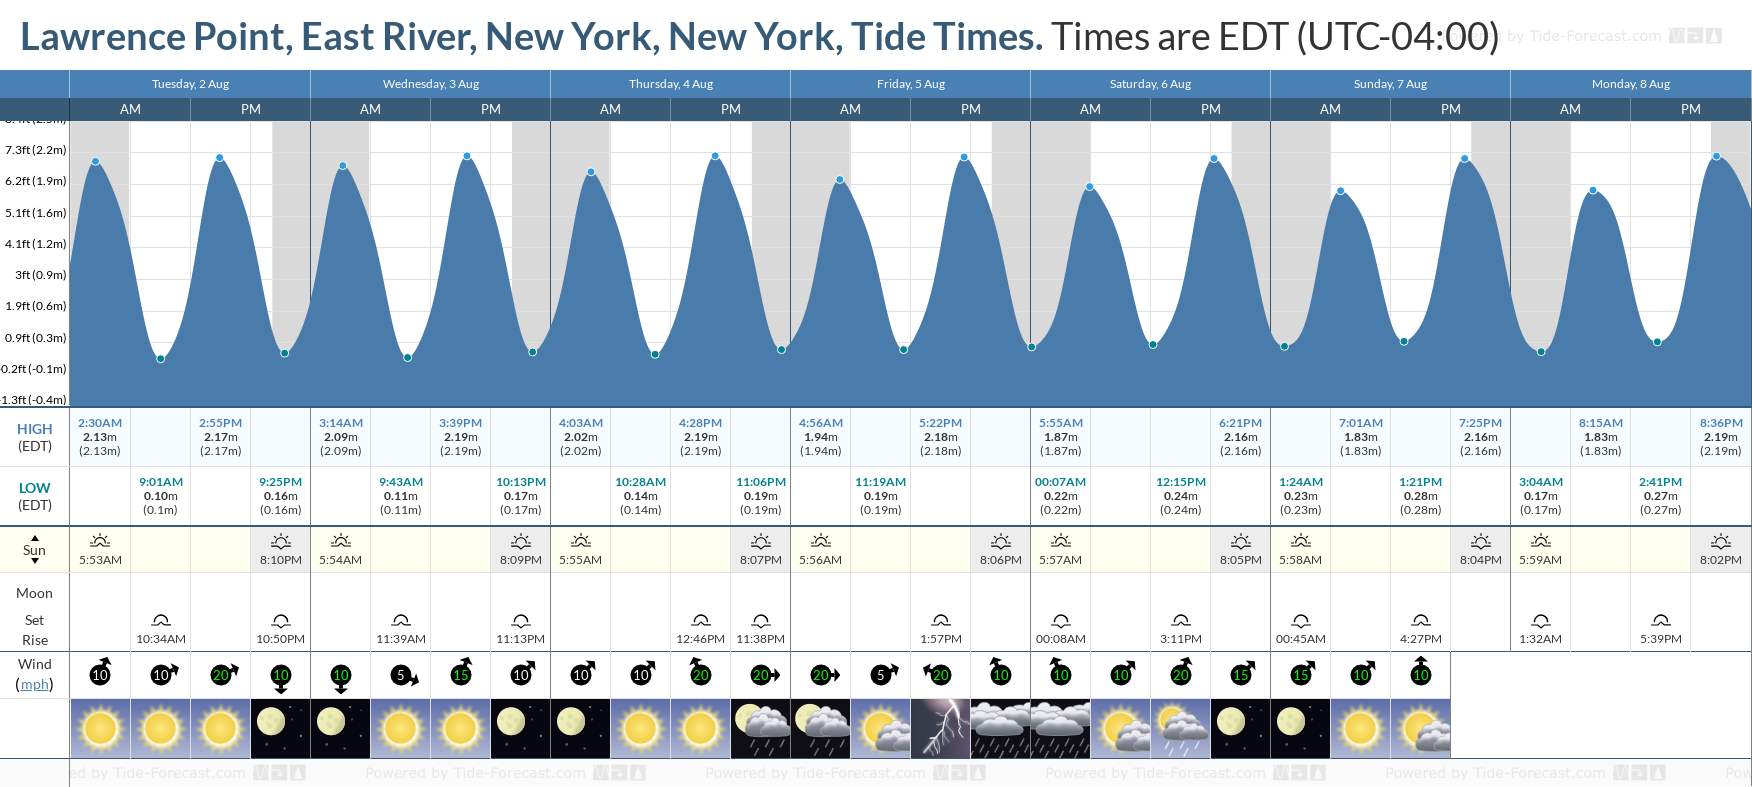 Lawrence Point, East River, New York, New York Tide Chart including high and low tide tide times for the next 7 days